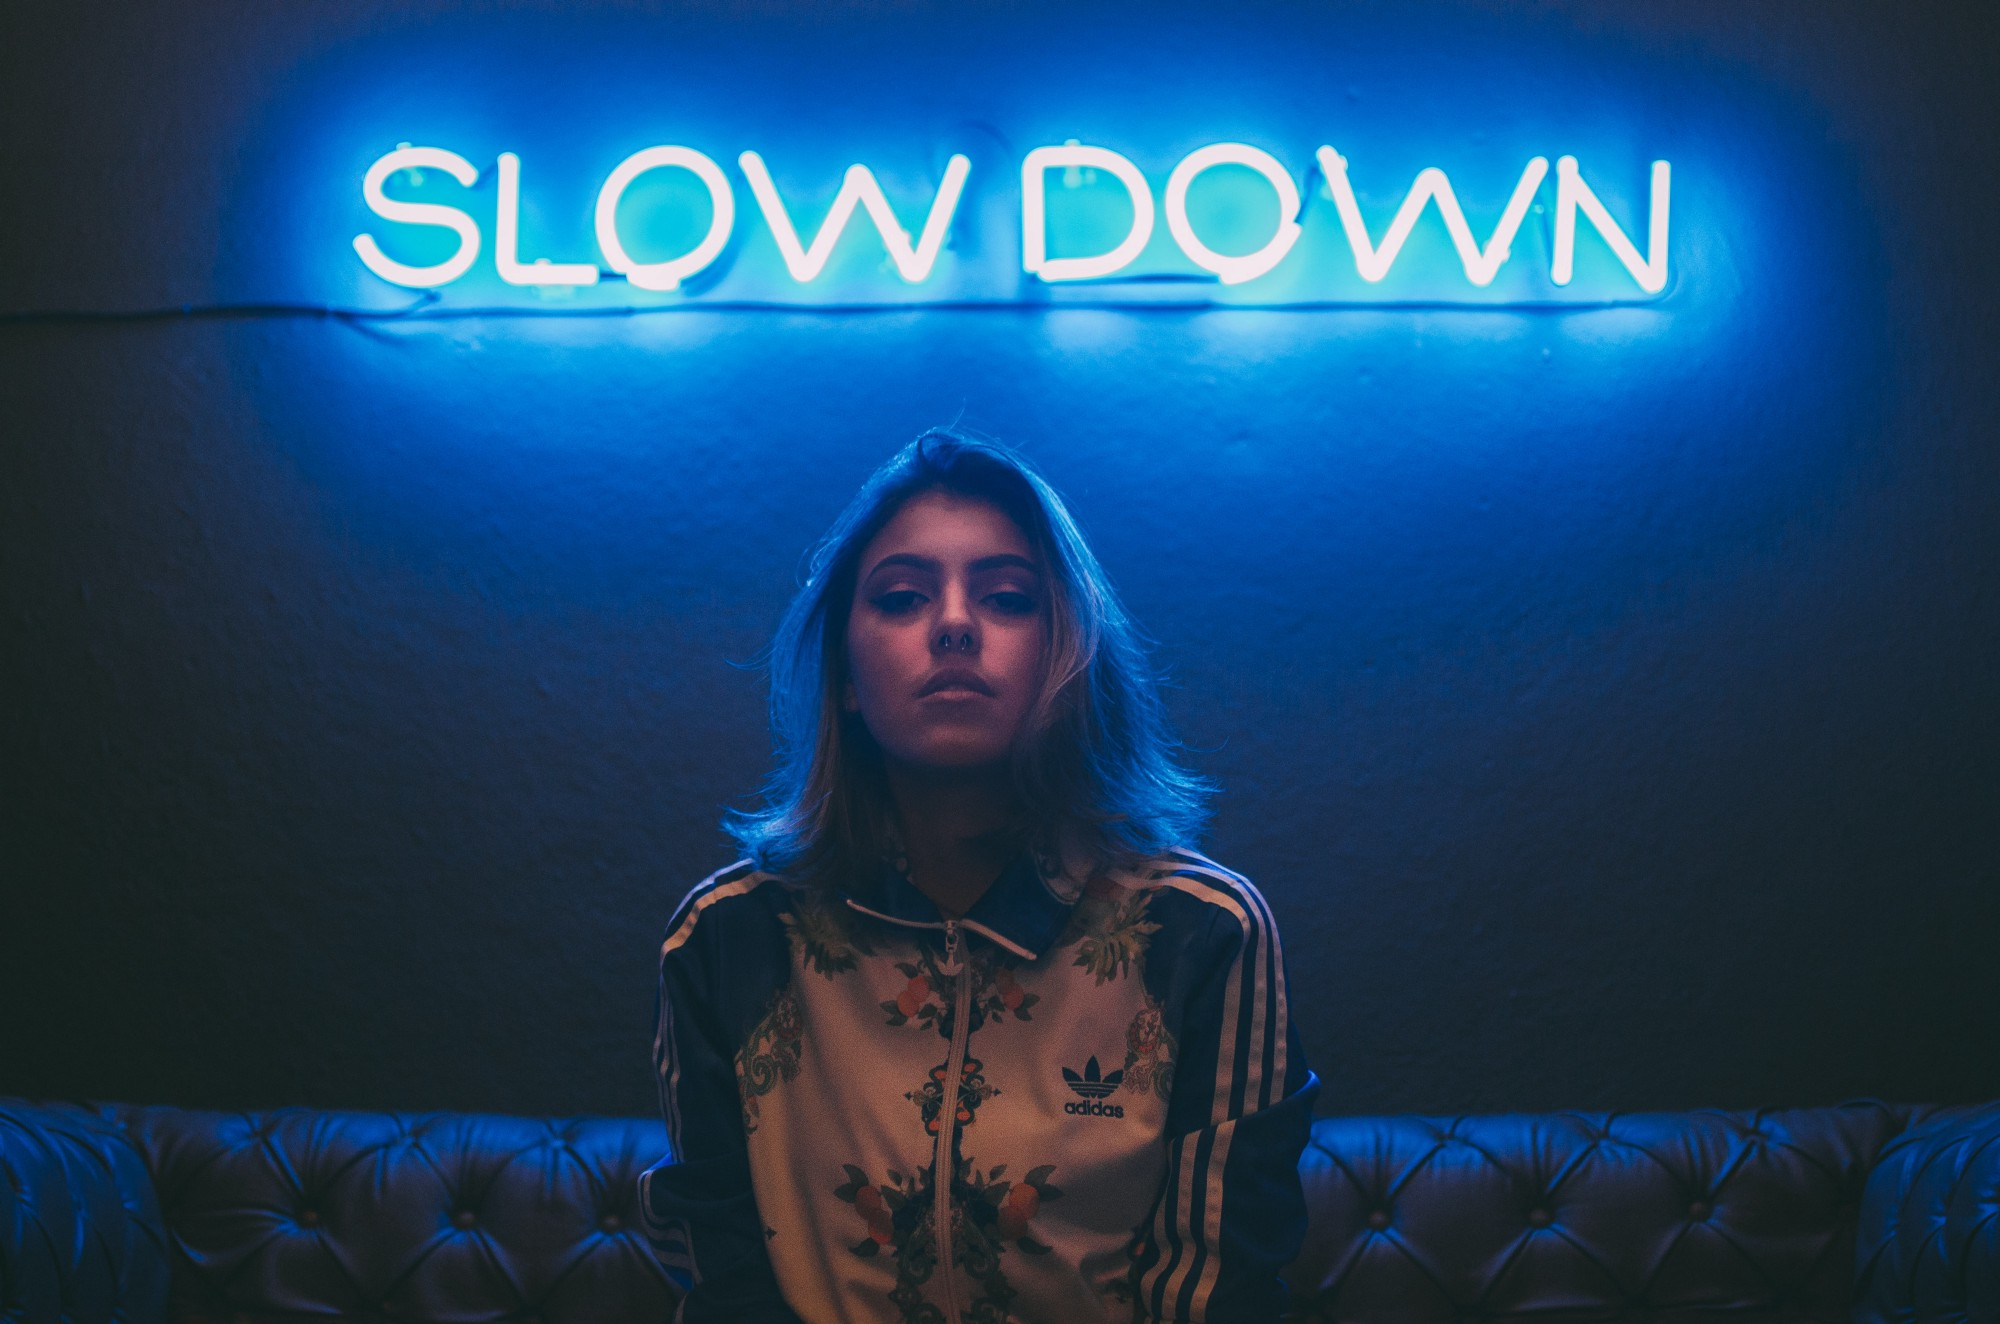 Let Go of These 7 Toxic Habits to Find Stillness Every Day—portrait of young woman with neon slow down sign